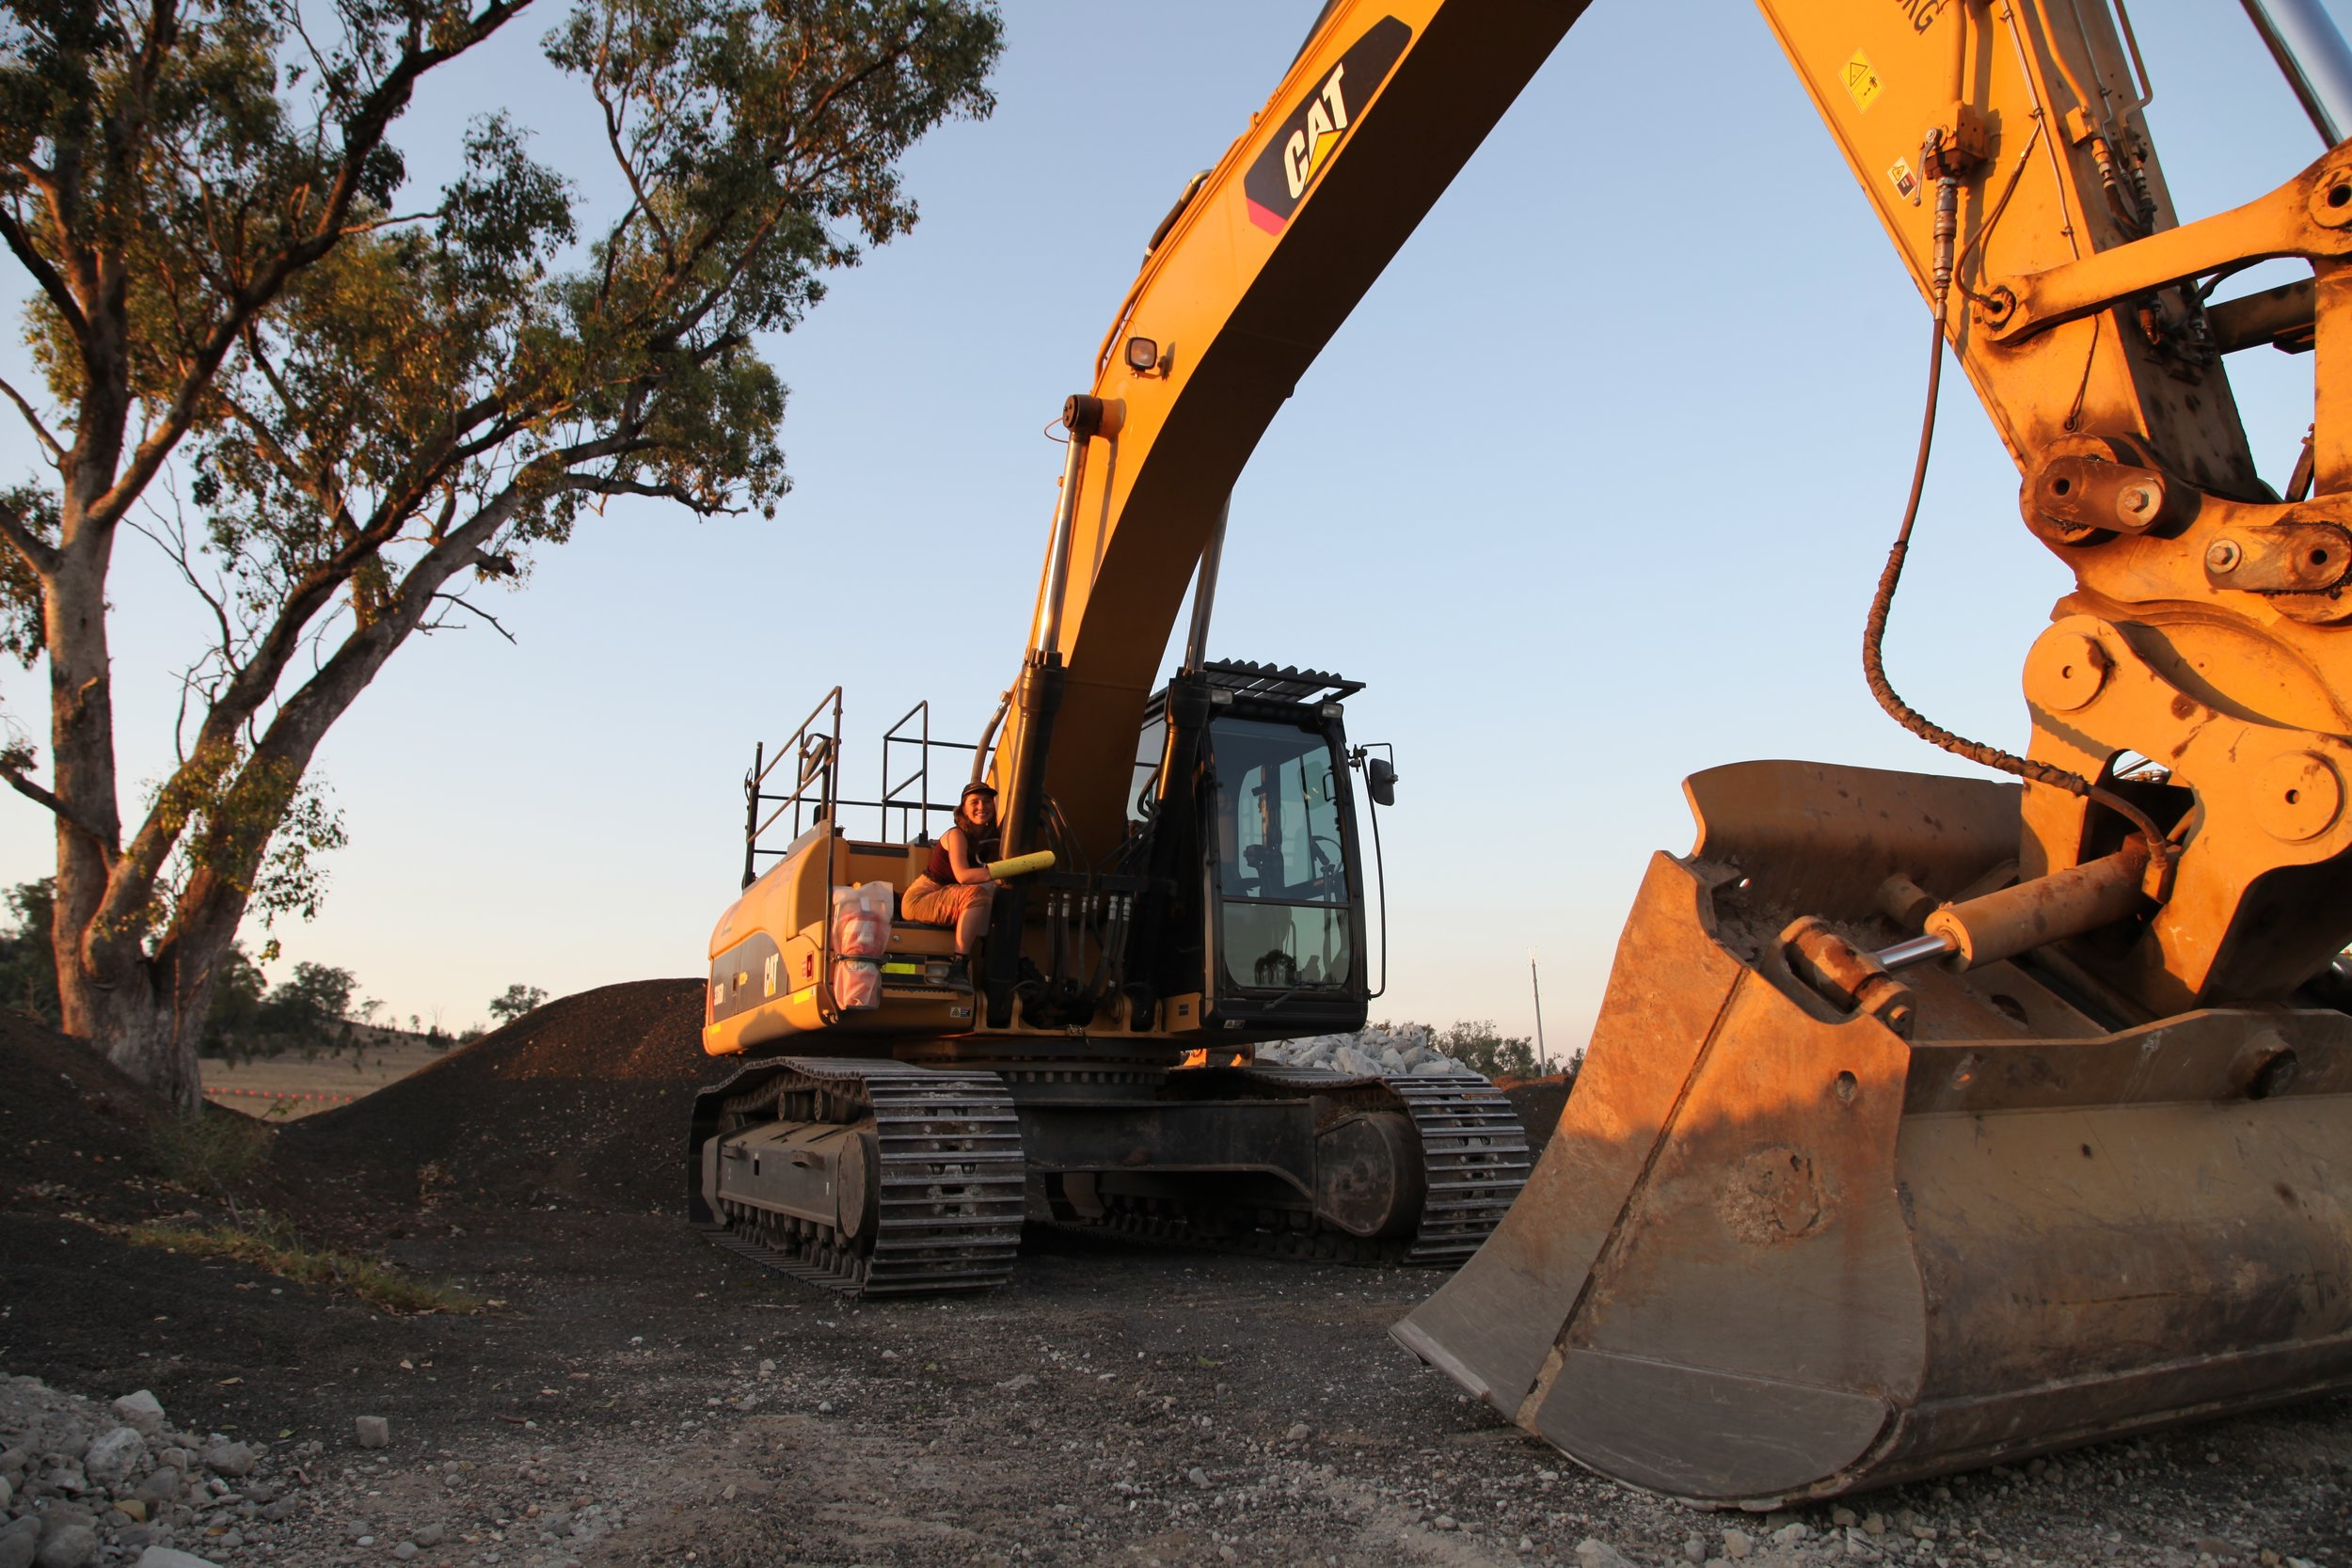 locked-on-excavator-namoi-river.jpg